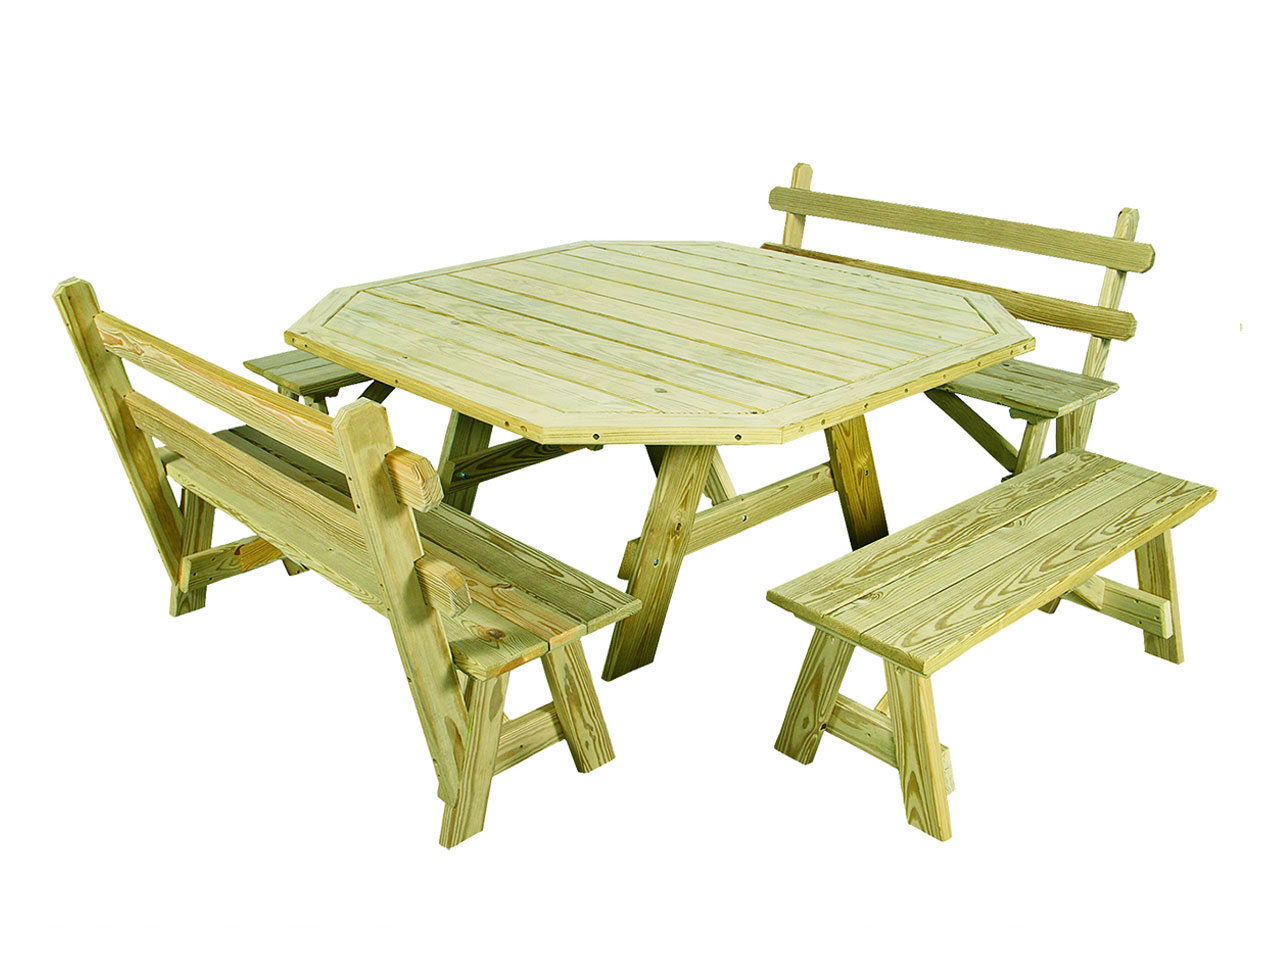 Outdoor furniture - wood picnic table with border